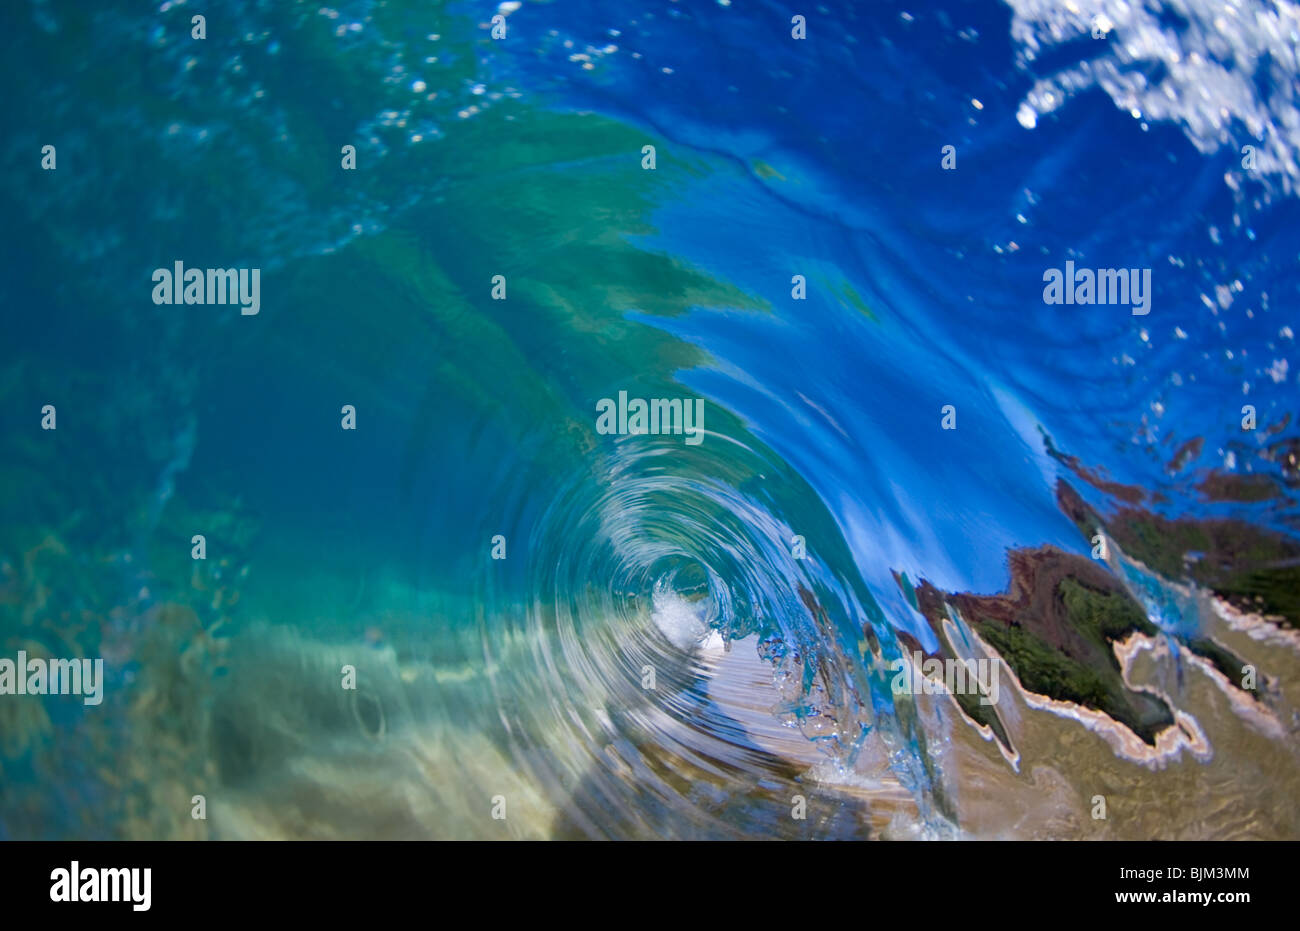 A perfect endless blue wave. - Stock Image